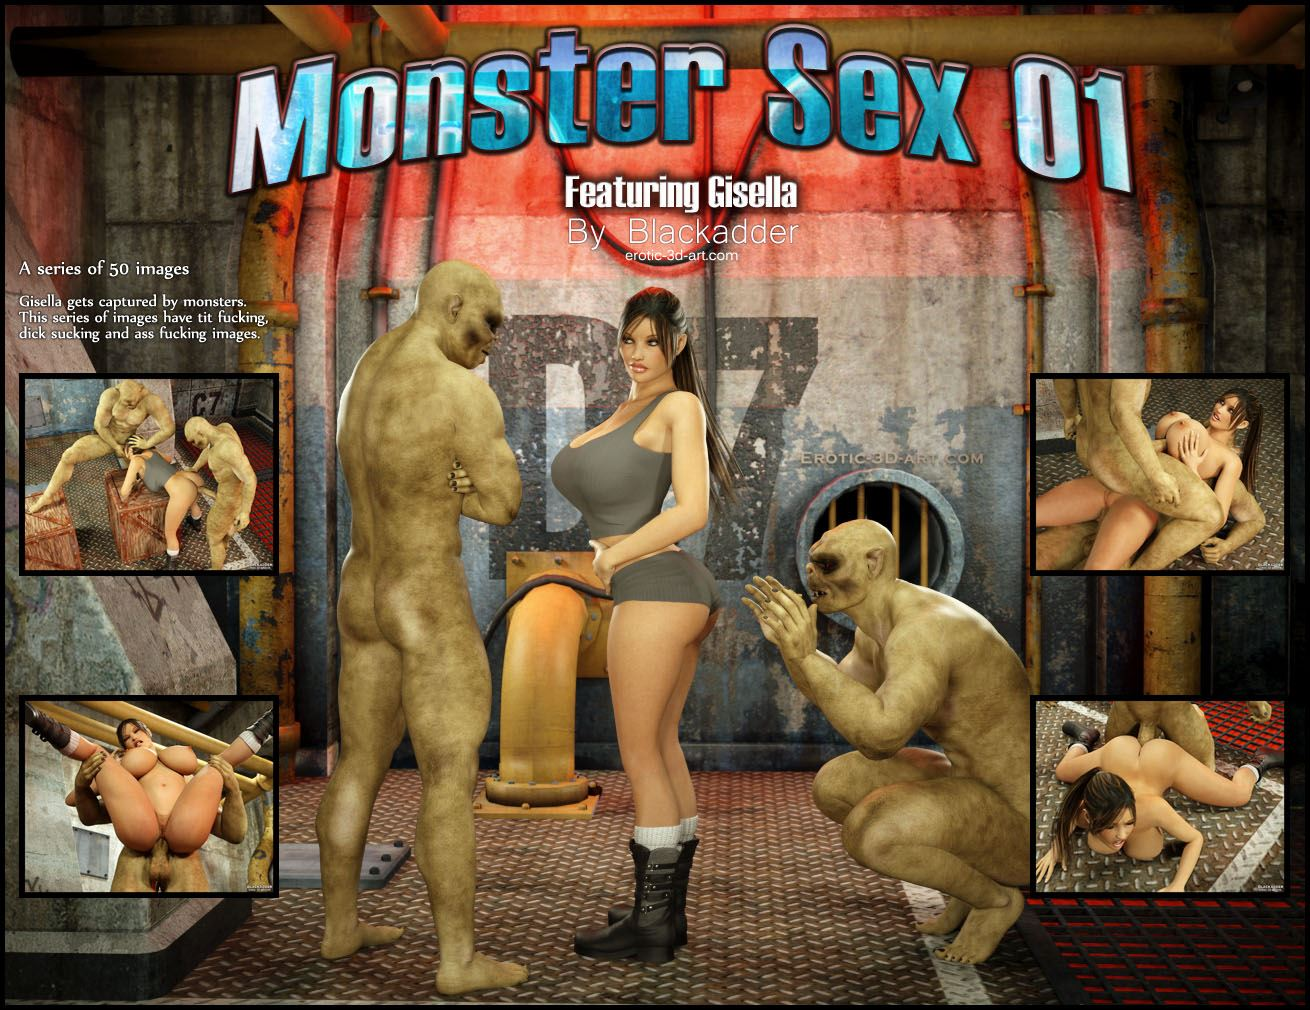 Blood hd and 3d xxx pussy pornos pictures